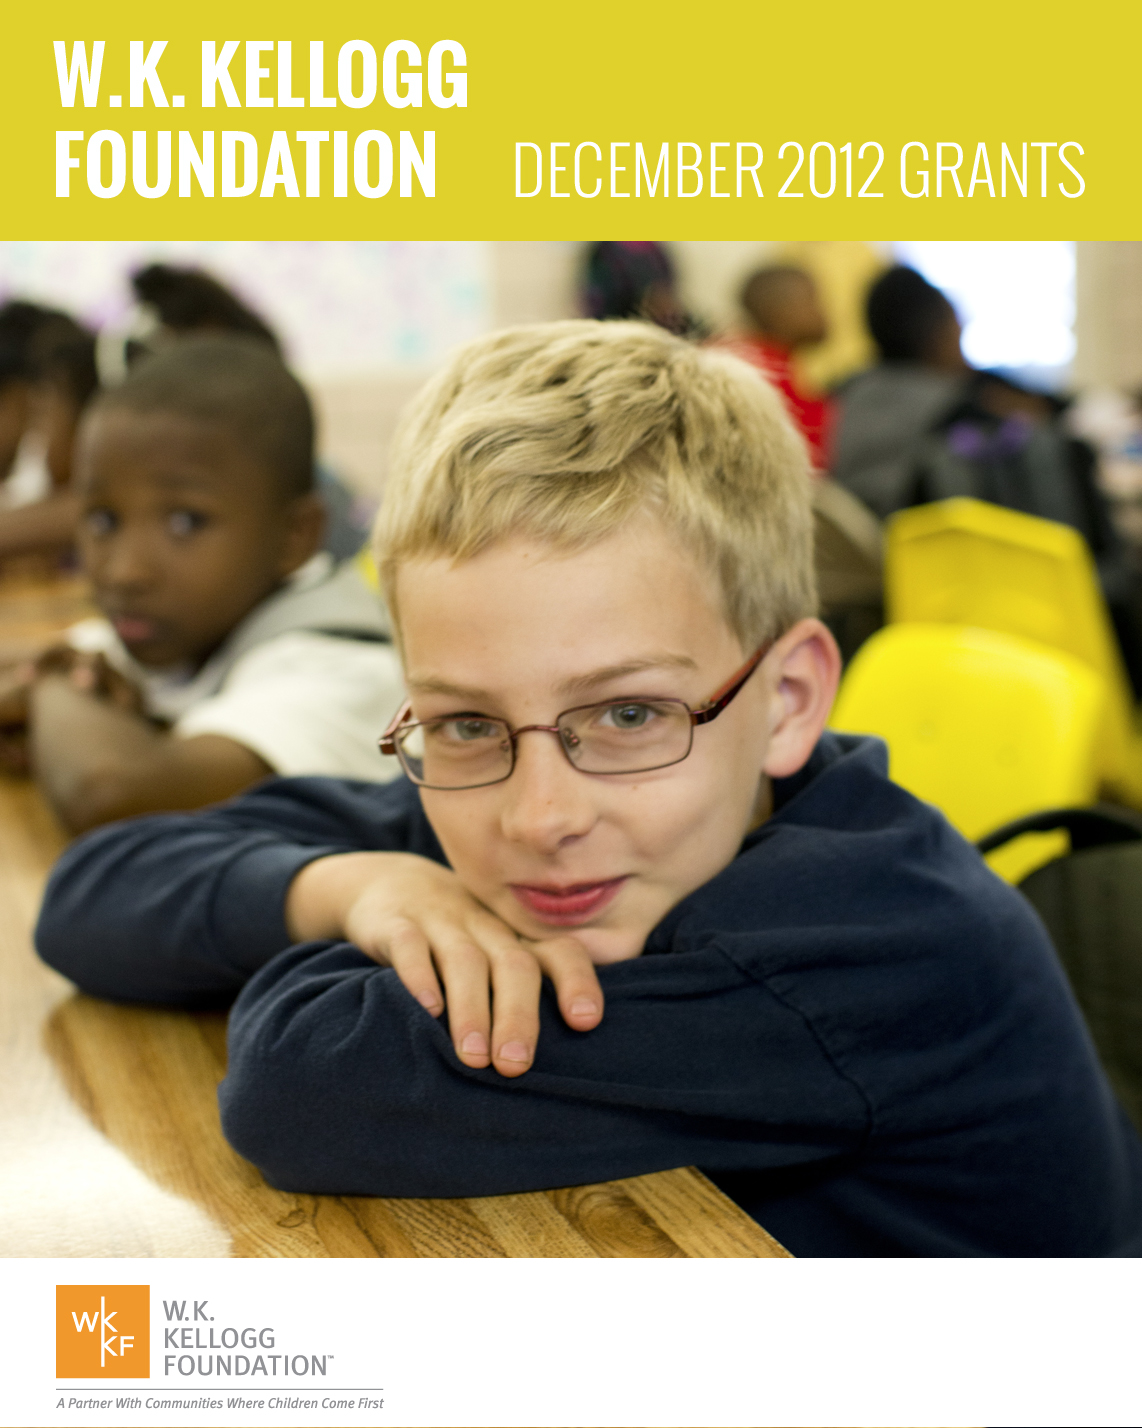 W.K. Kellogg Foundation Grants - December 2012